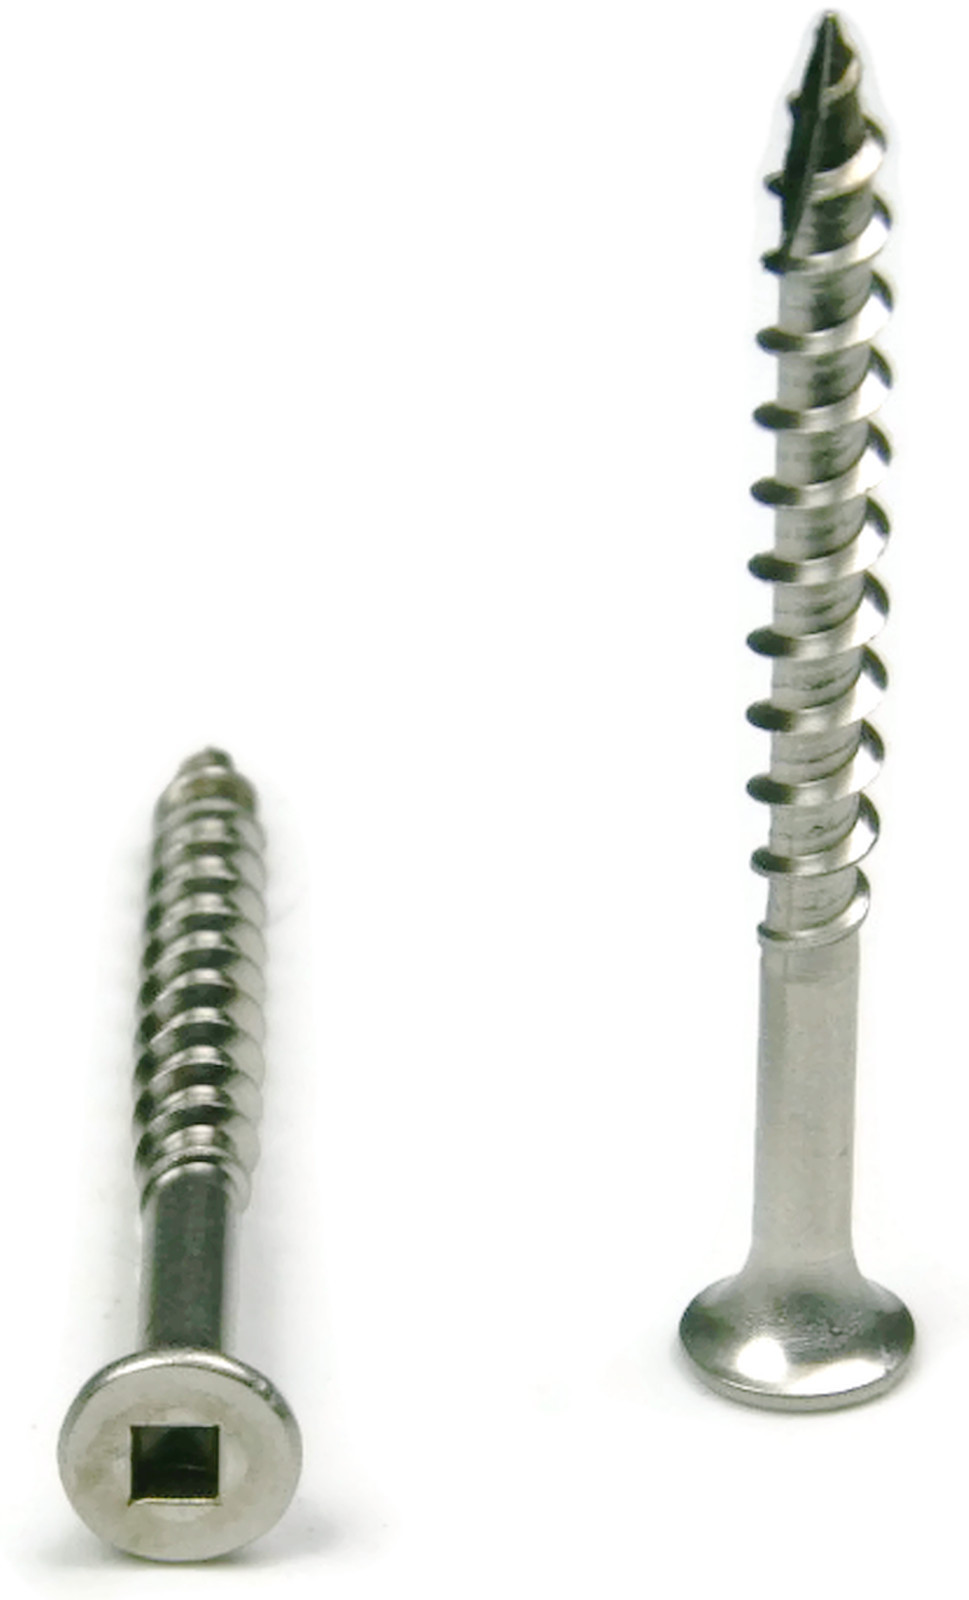 Stainless Steel Deck Screws Square Drive Wood 12 X 3 1 2